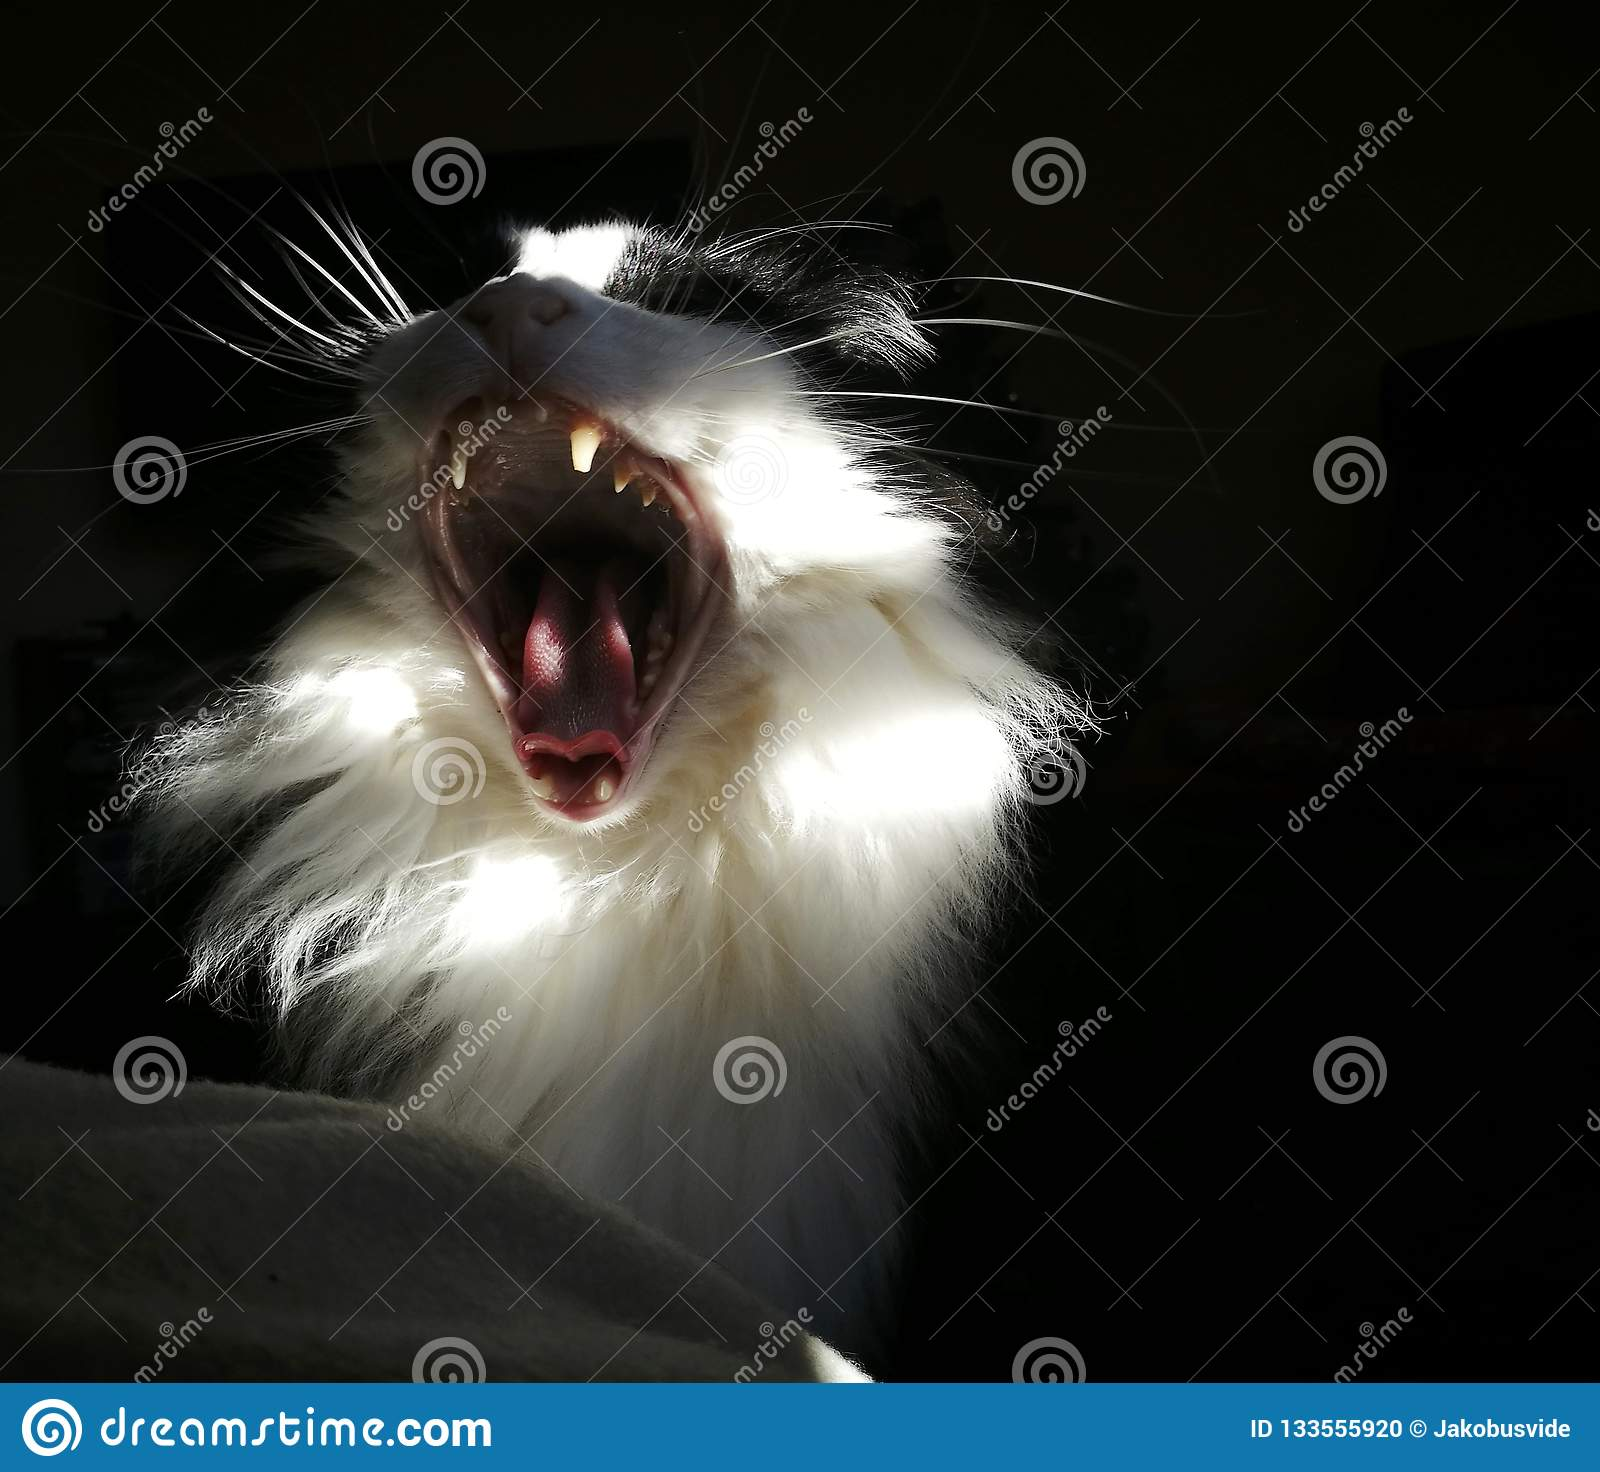 The cat is yawning, or is it roaring?